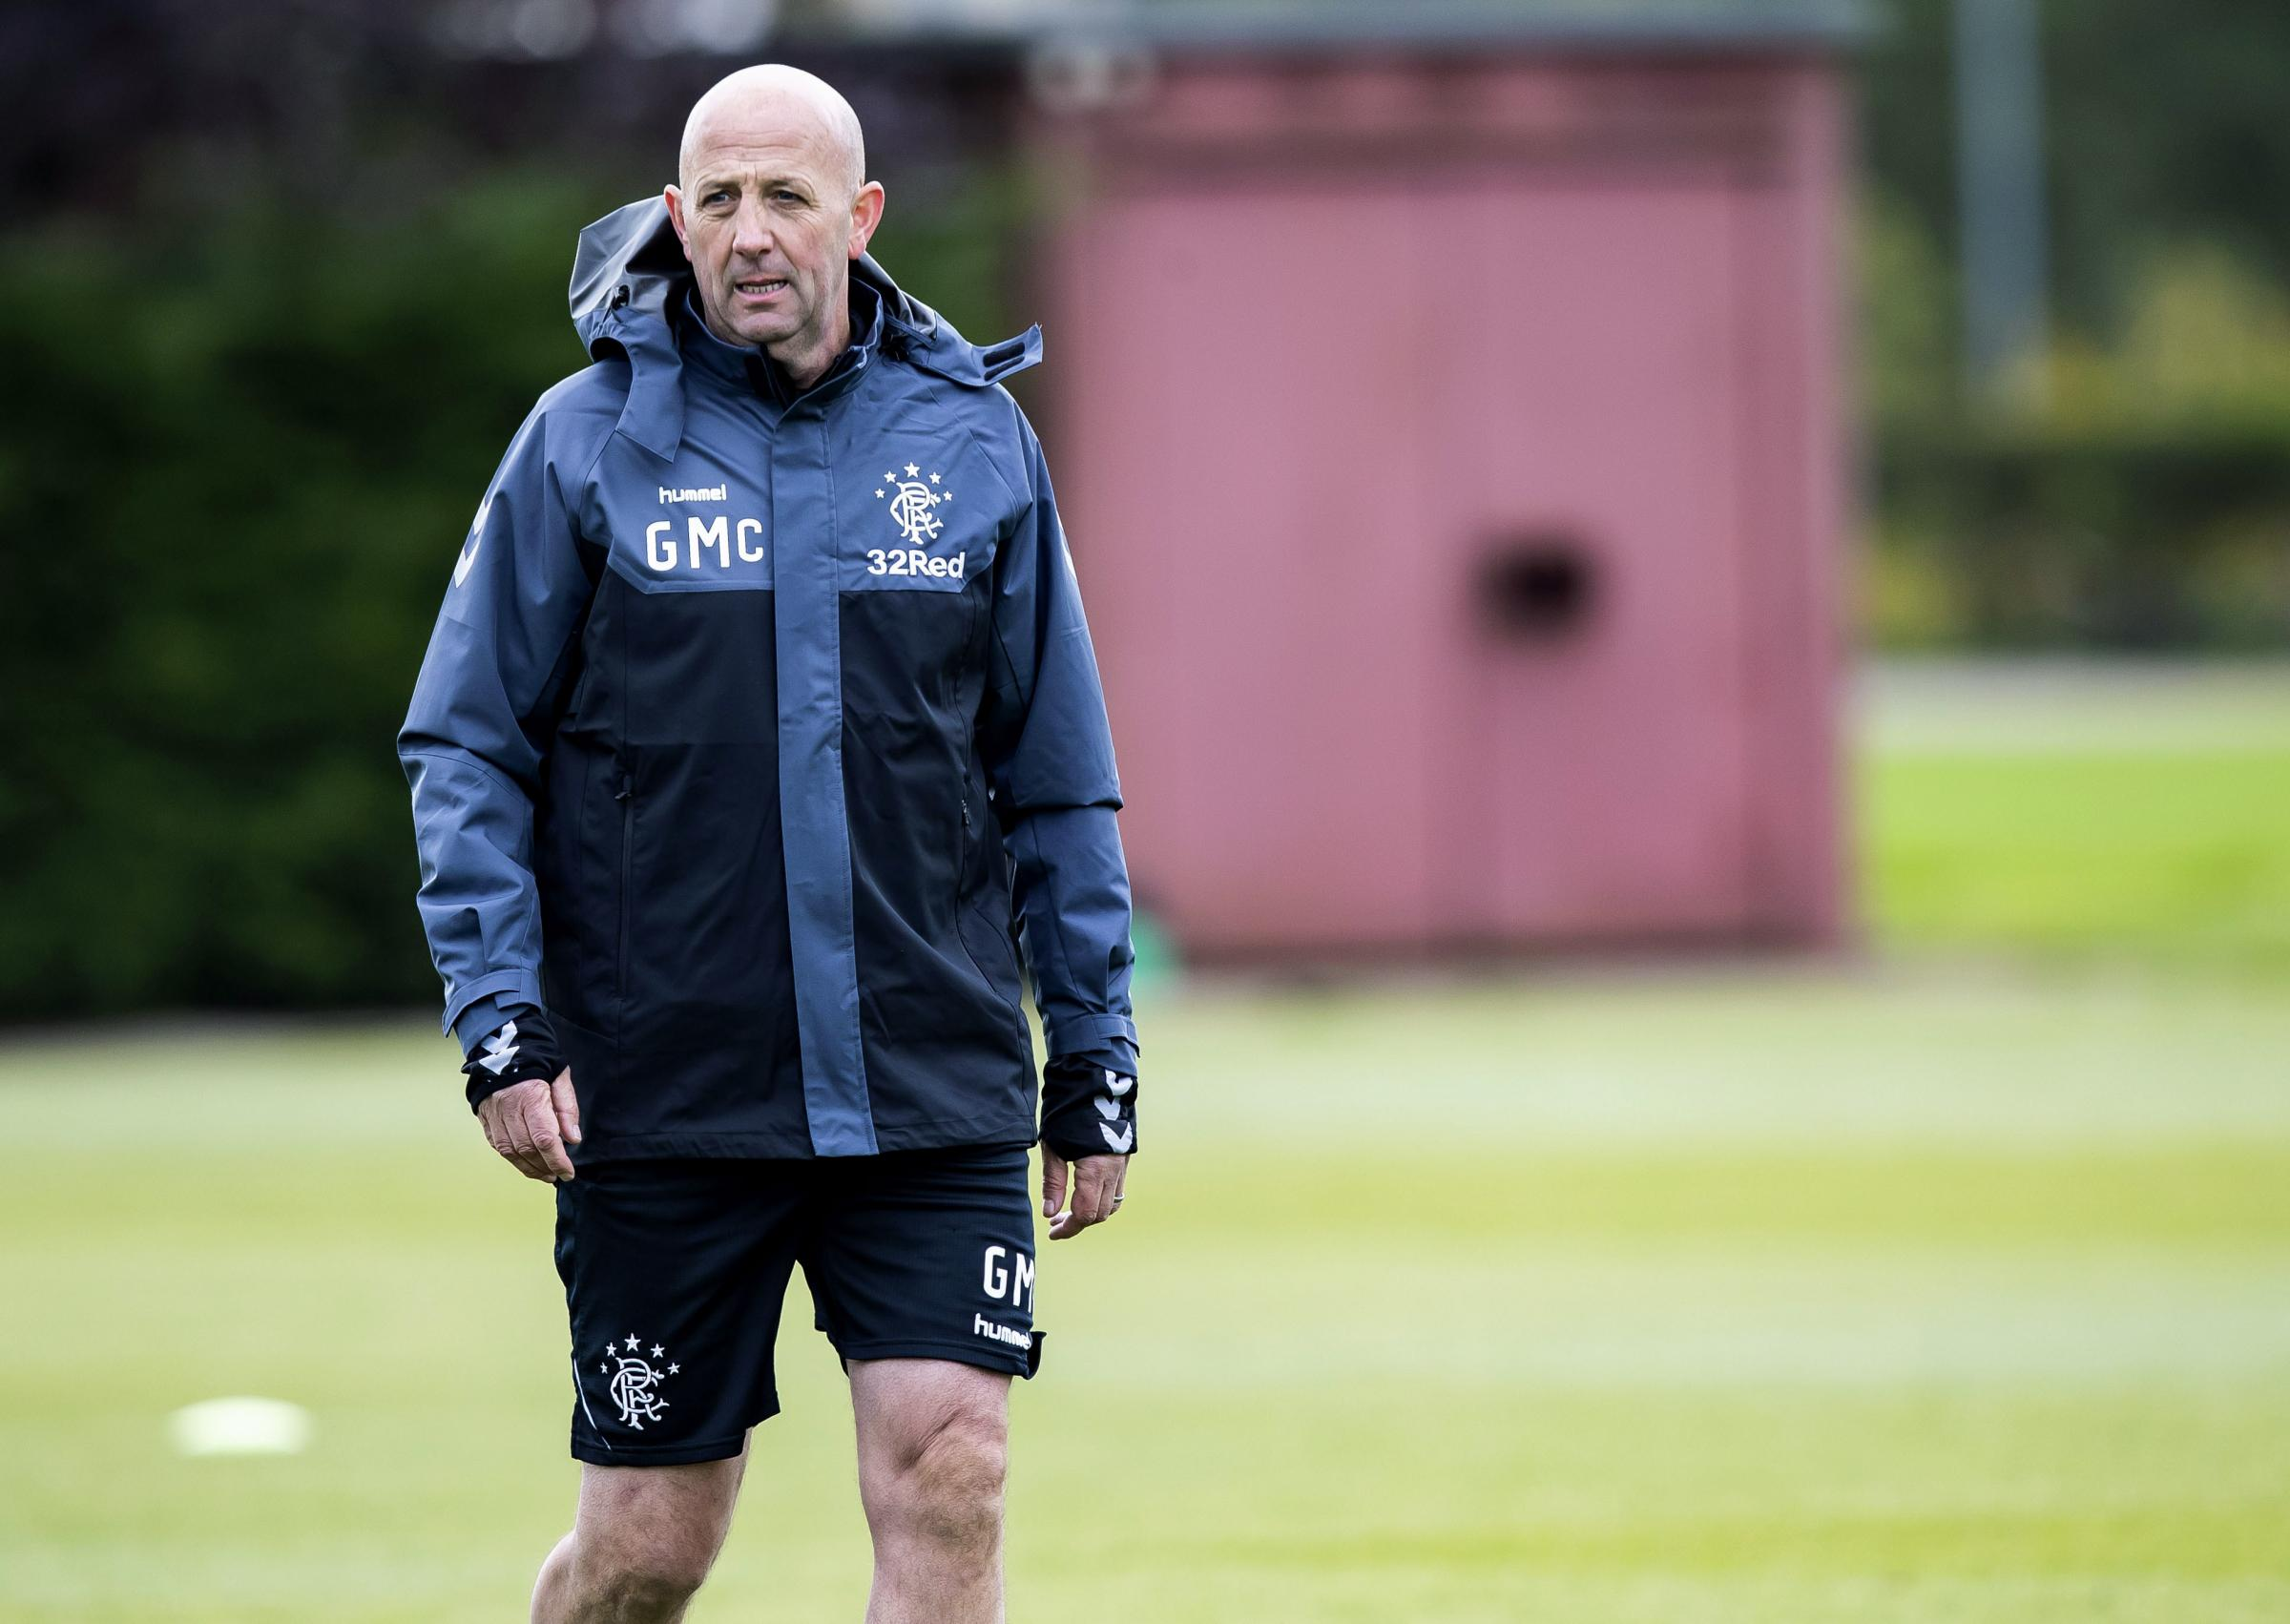 25/09/18. RANGERS TRAINING. THE HUMMEL TRAINING CENTRE - GLASGOW . Rangers assistant manager Gary McAllister.